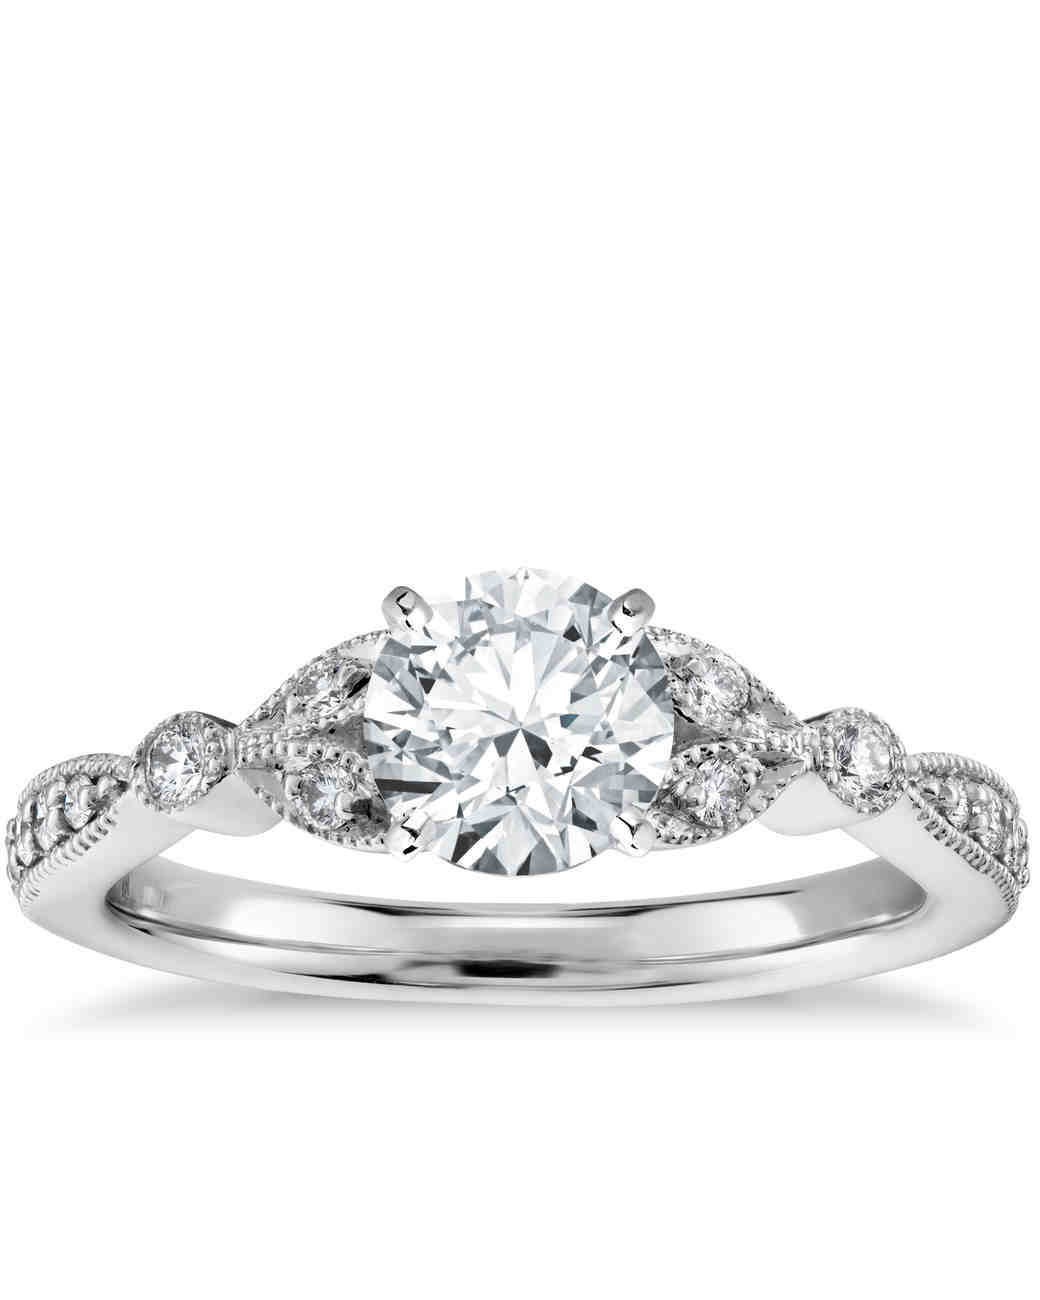 47 Stunning Vintage Engagement Rings Martha Stewart Weddings